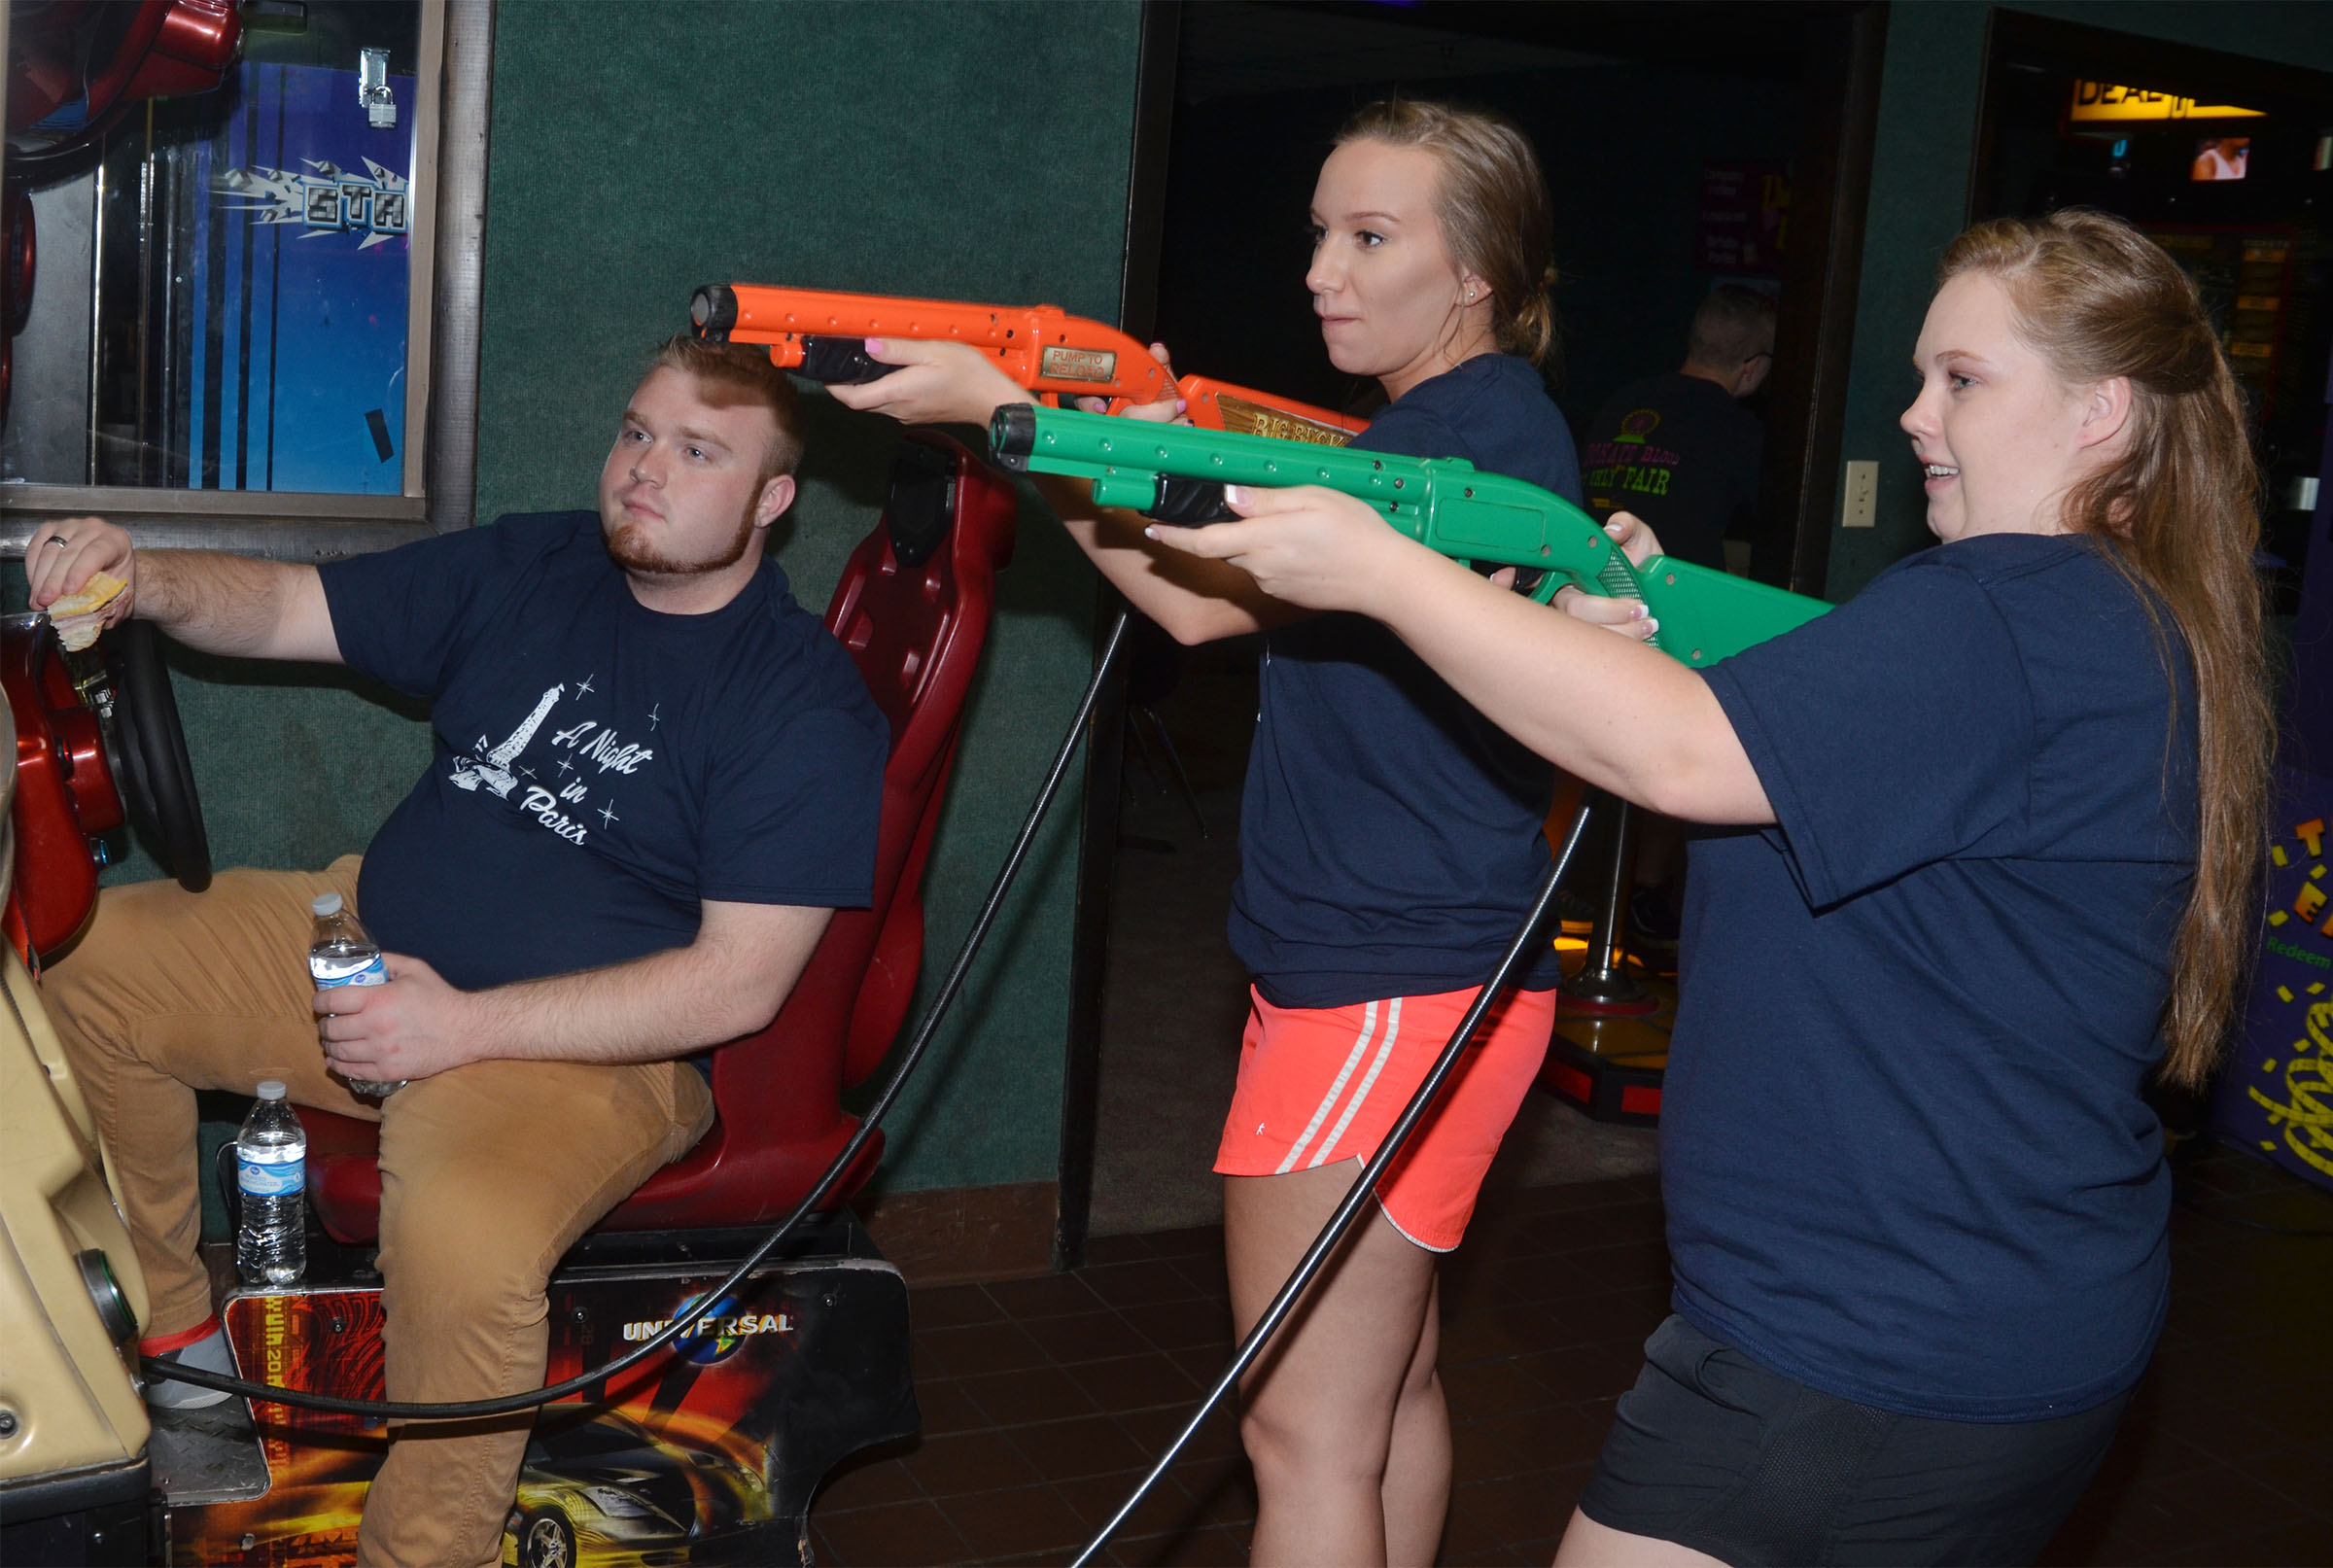 CHS junior Madison Dial, center, and senior Madison Lewis play games at prom breakfast. At left is Dial's date Jared Campbell.